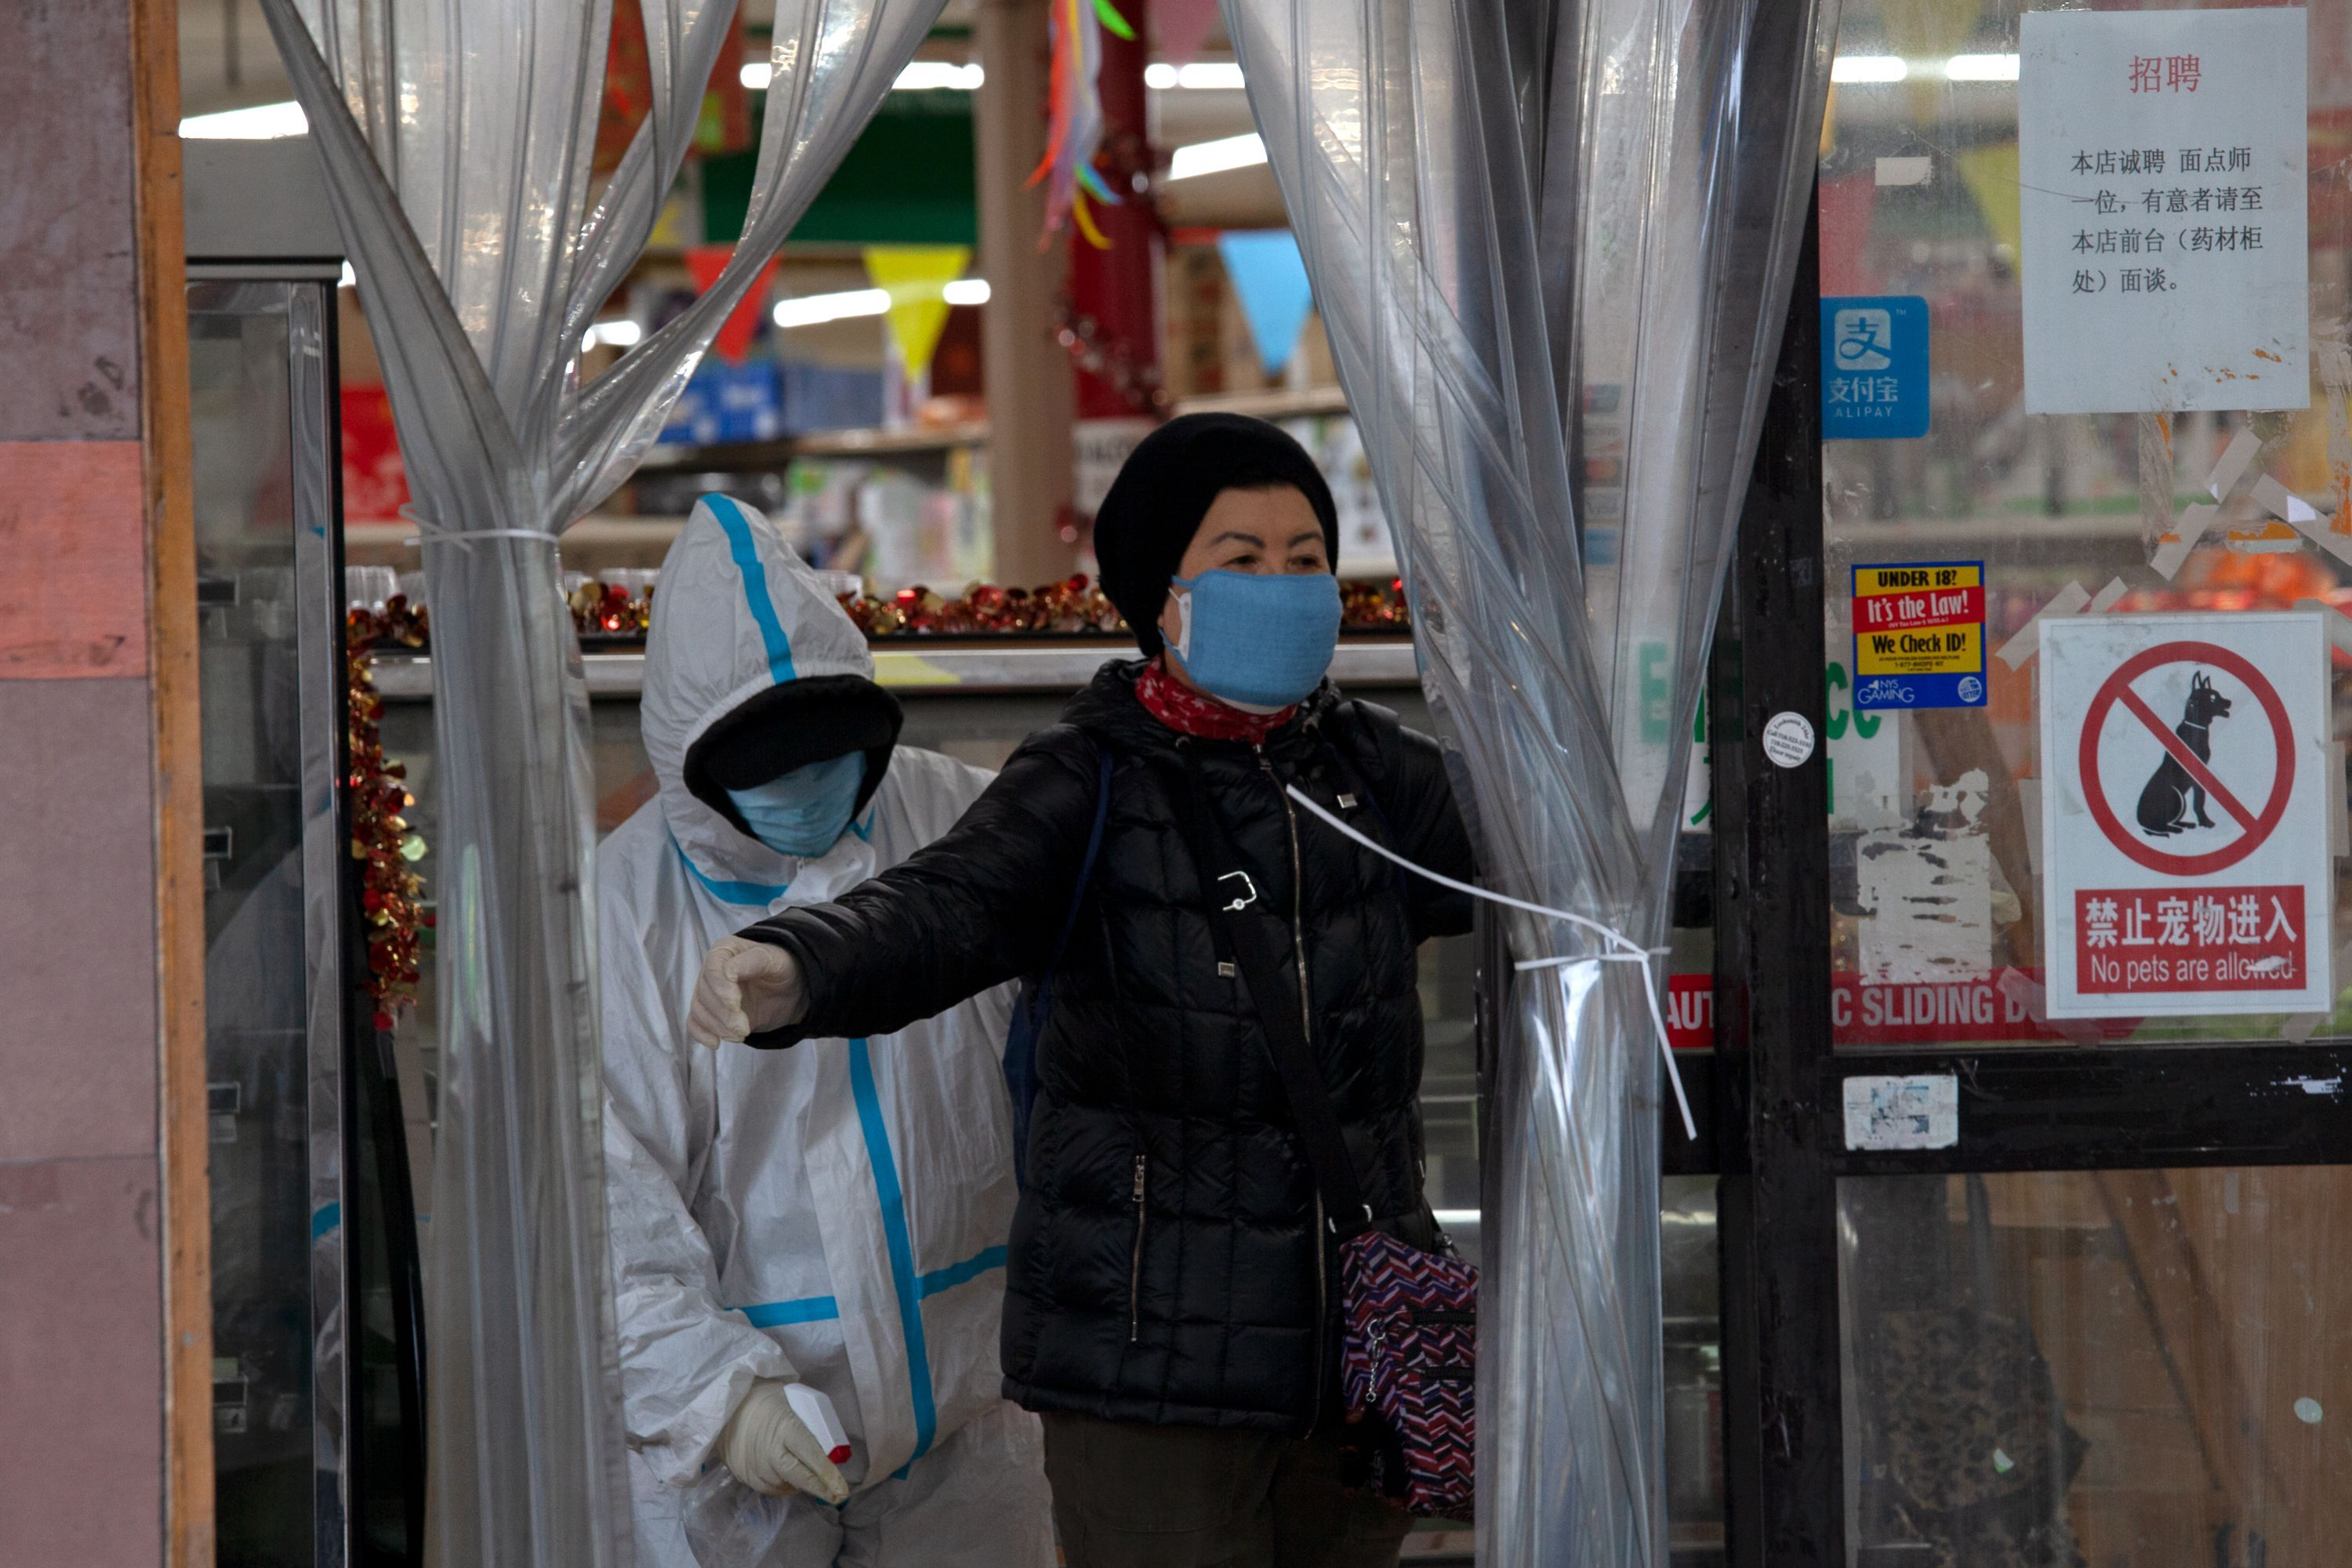 A woman is disinfected after entering a market in Flushing, Queens during the coronavirus outbreak.